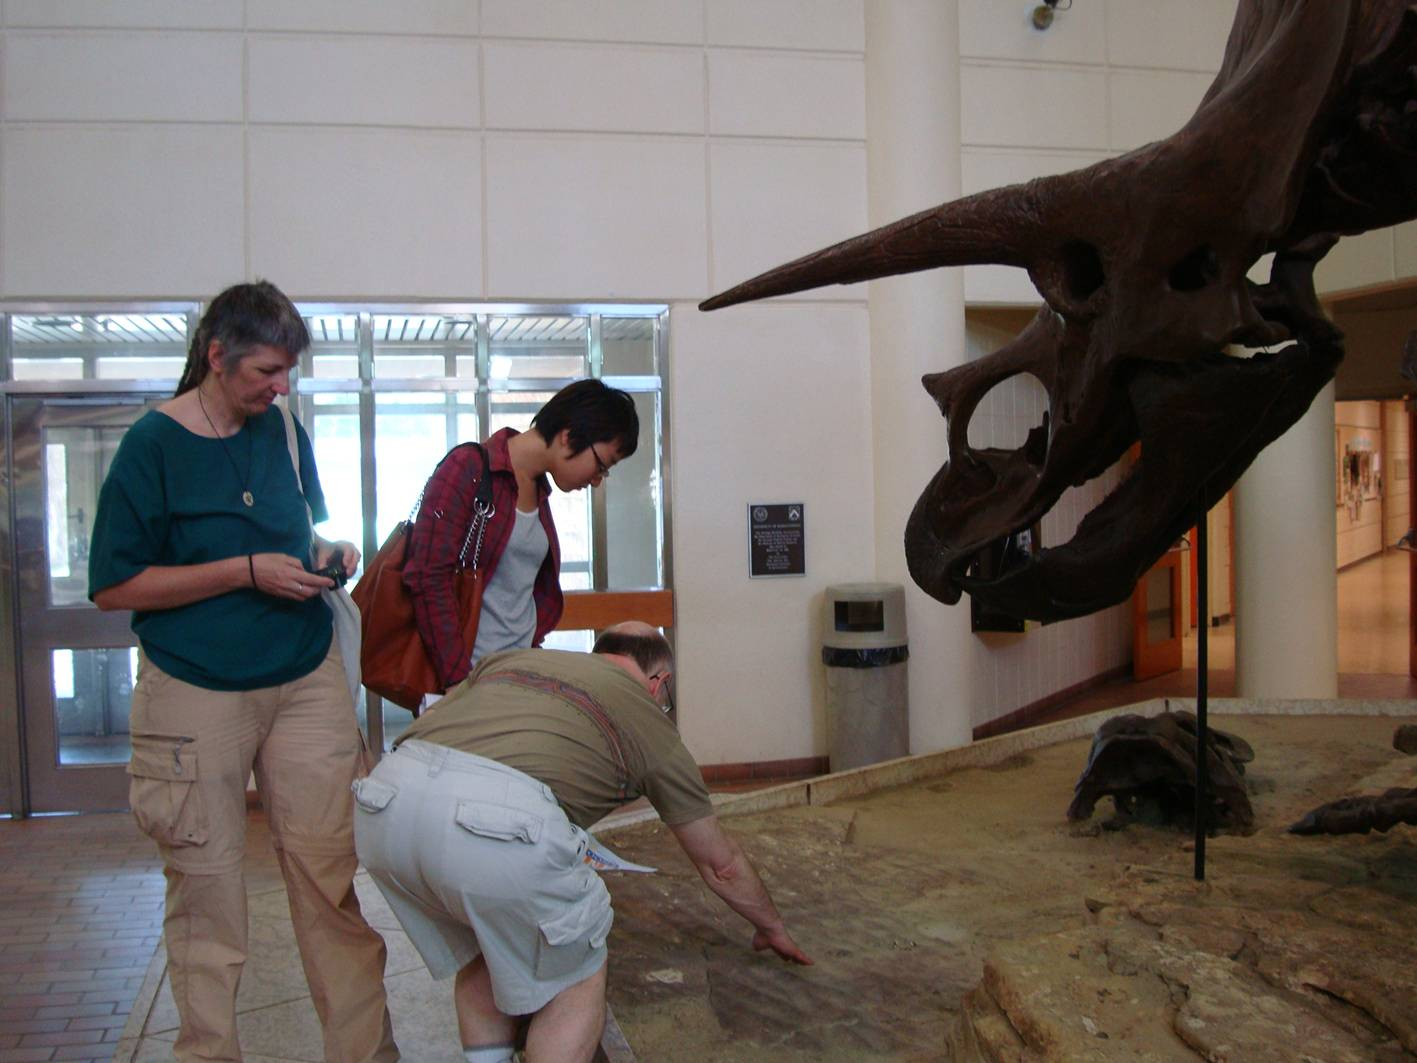 Picture:  Most people look at the dinosaur.  Kim, the geologist, directed our attention to the fossils in the stones the display was standing on.